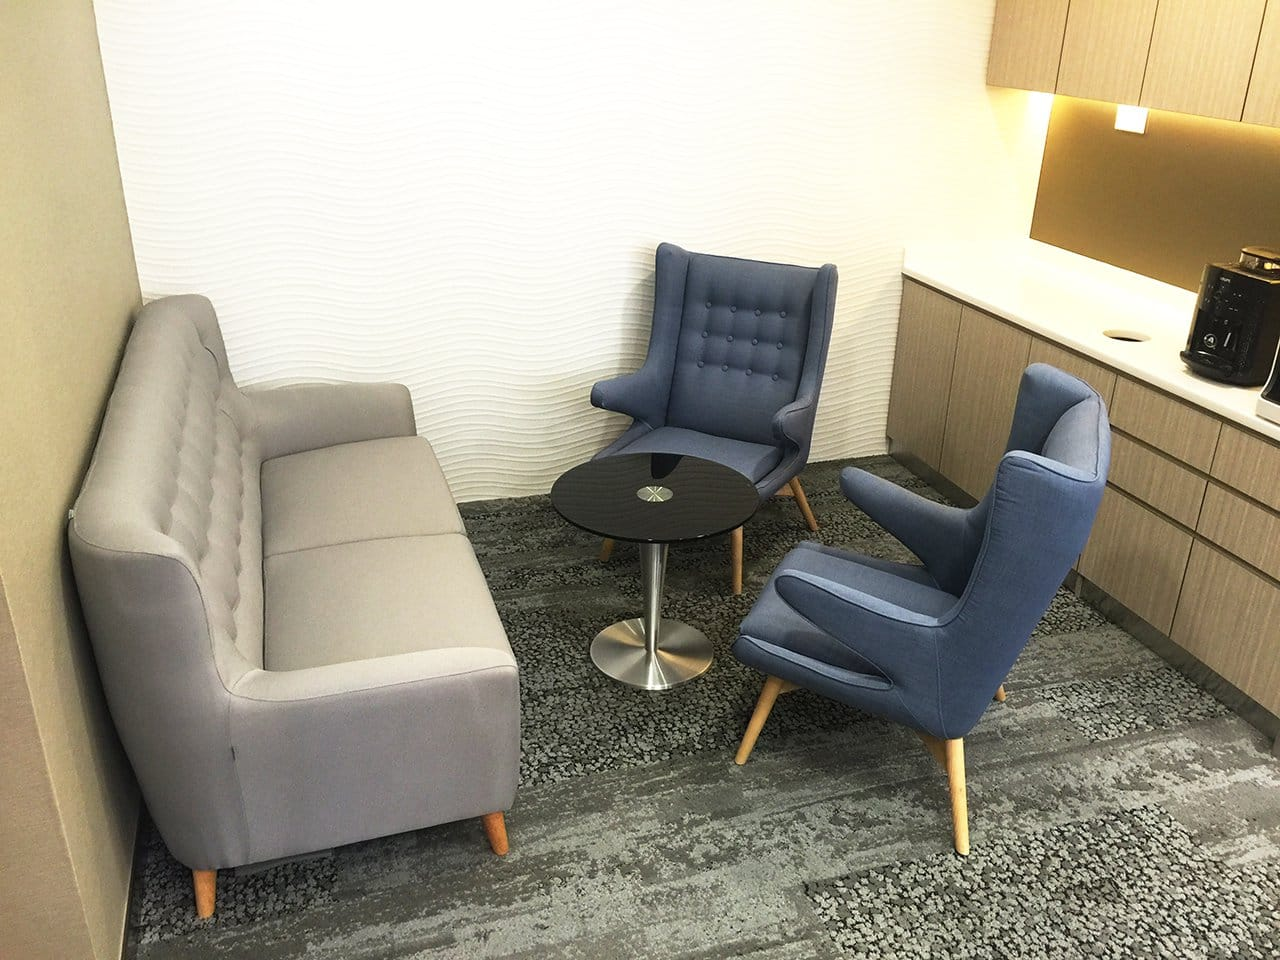 National Heart Centre - Hospital Drive | Product Seen: [Papa Lounge (replica), Kayama 3 Seater Sofa & Arnott Coffee Table]<br />